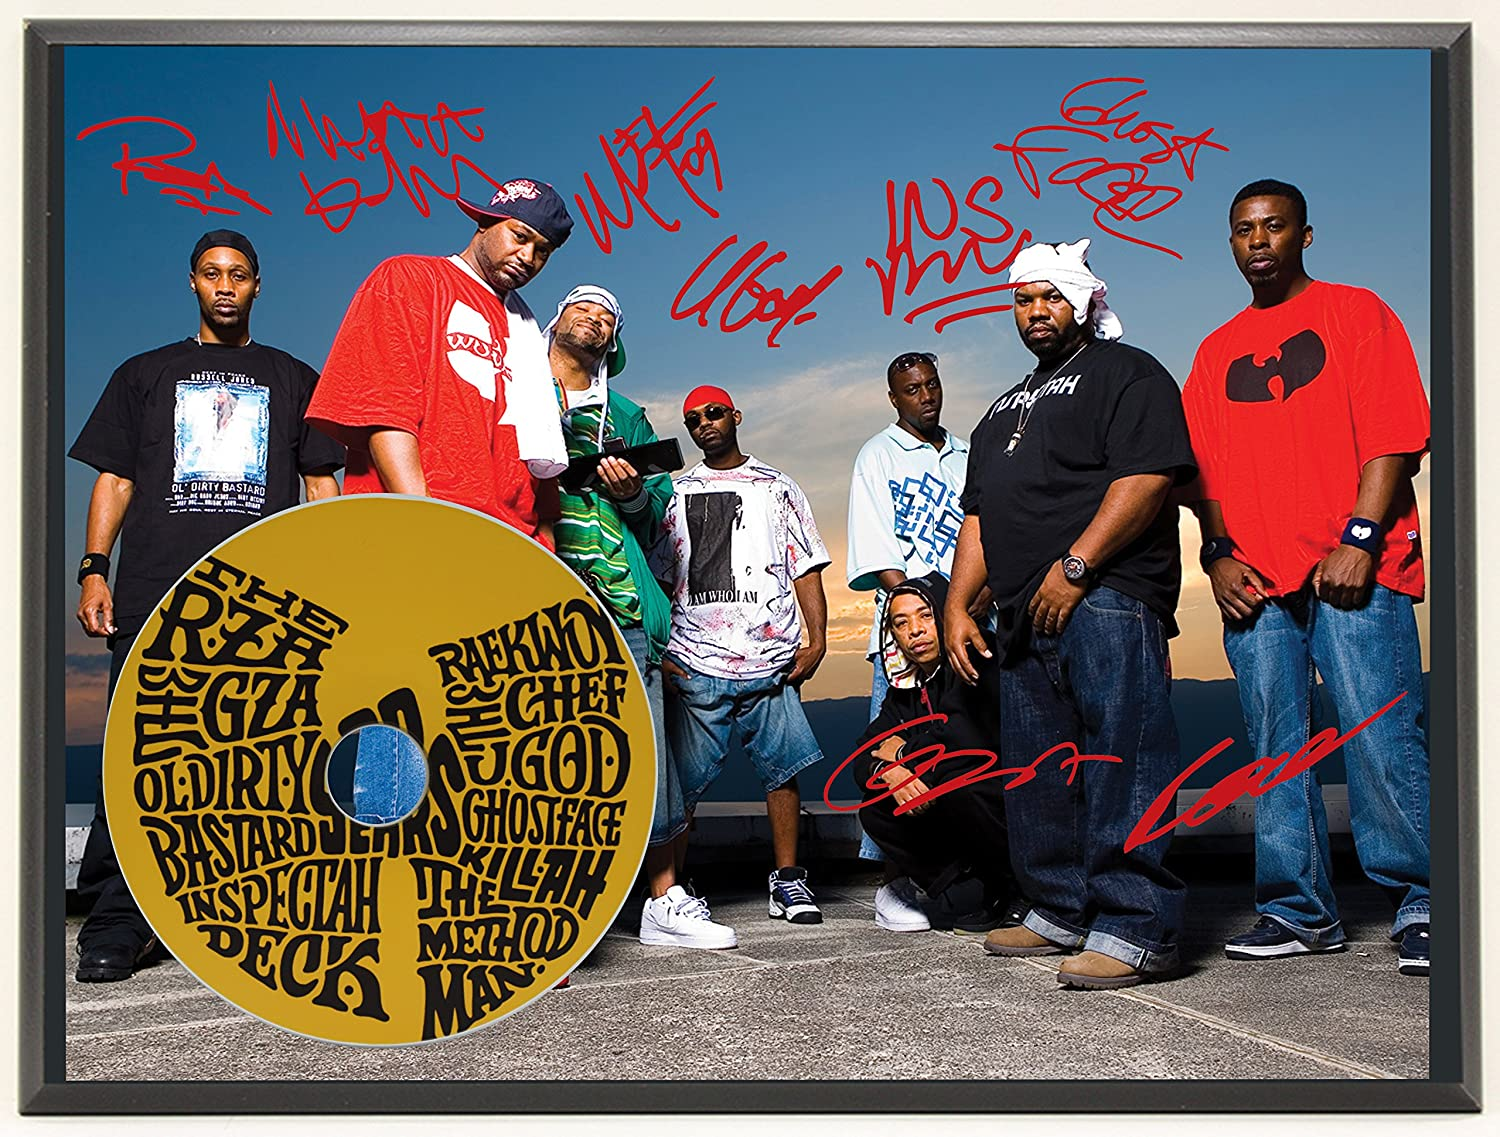 Wu-Tang Clan Limited Edition Signature Series Picture Disc CD Collectible Music Display Gift